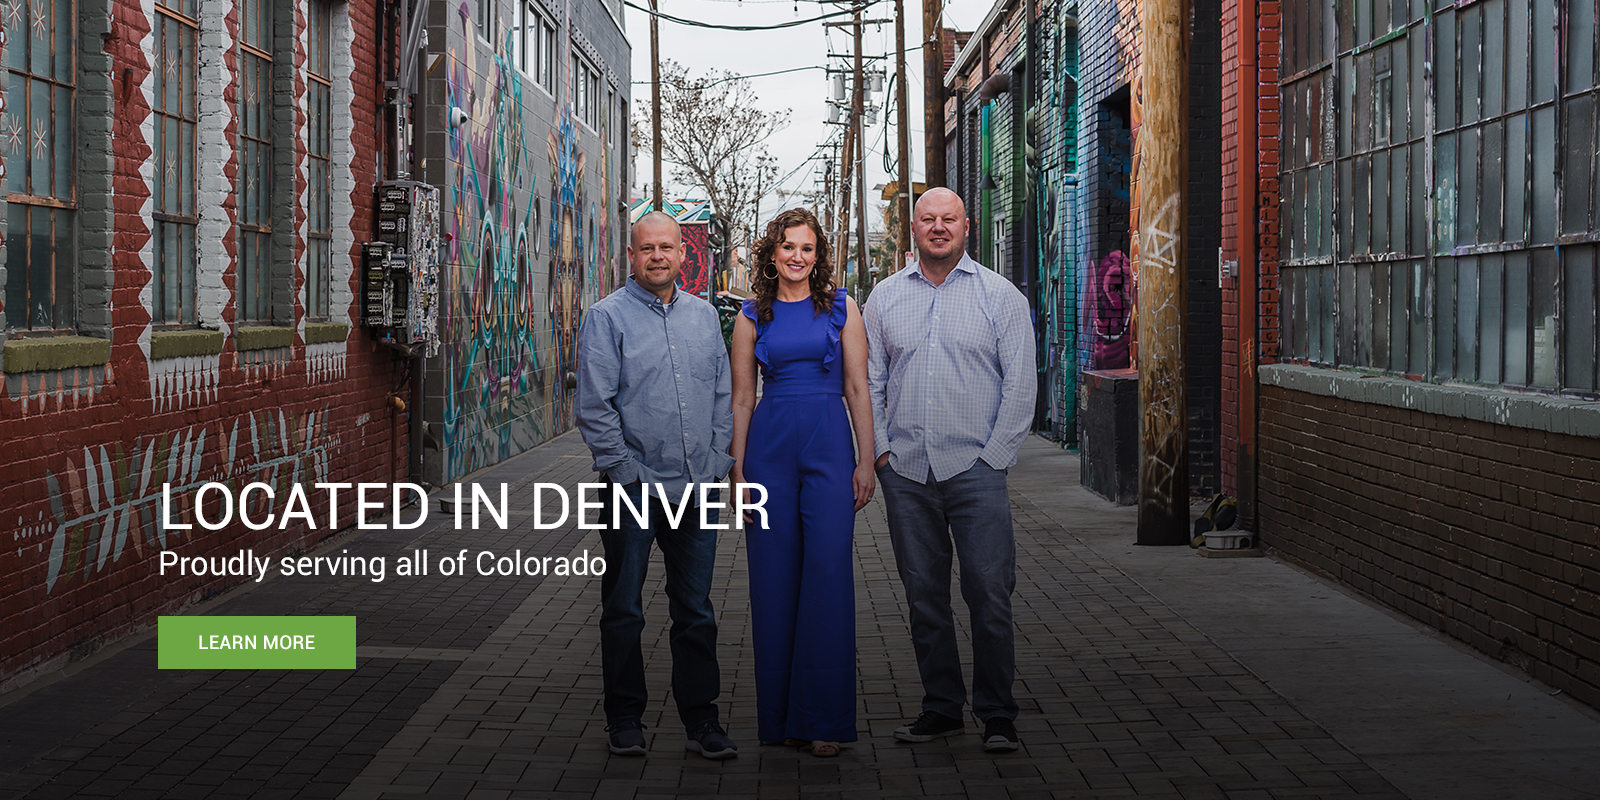 Located in Denver Proudly Serving all of Colorado